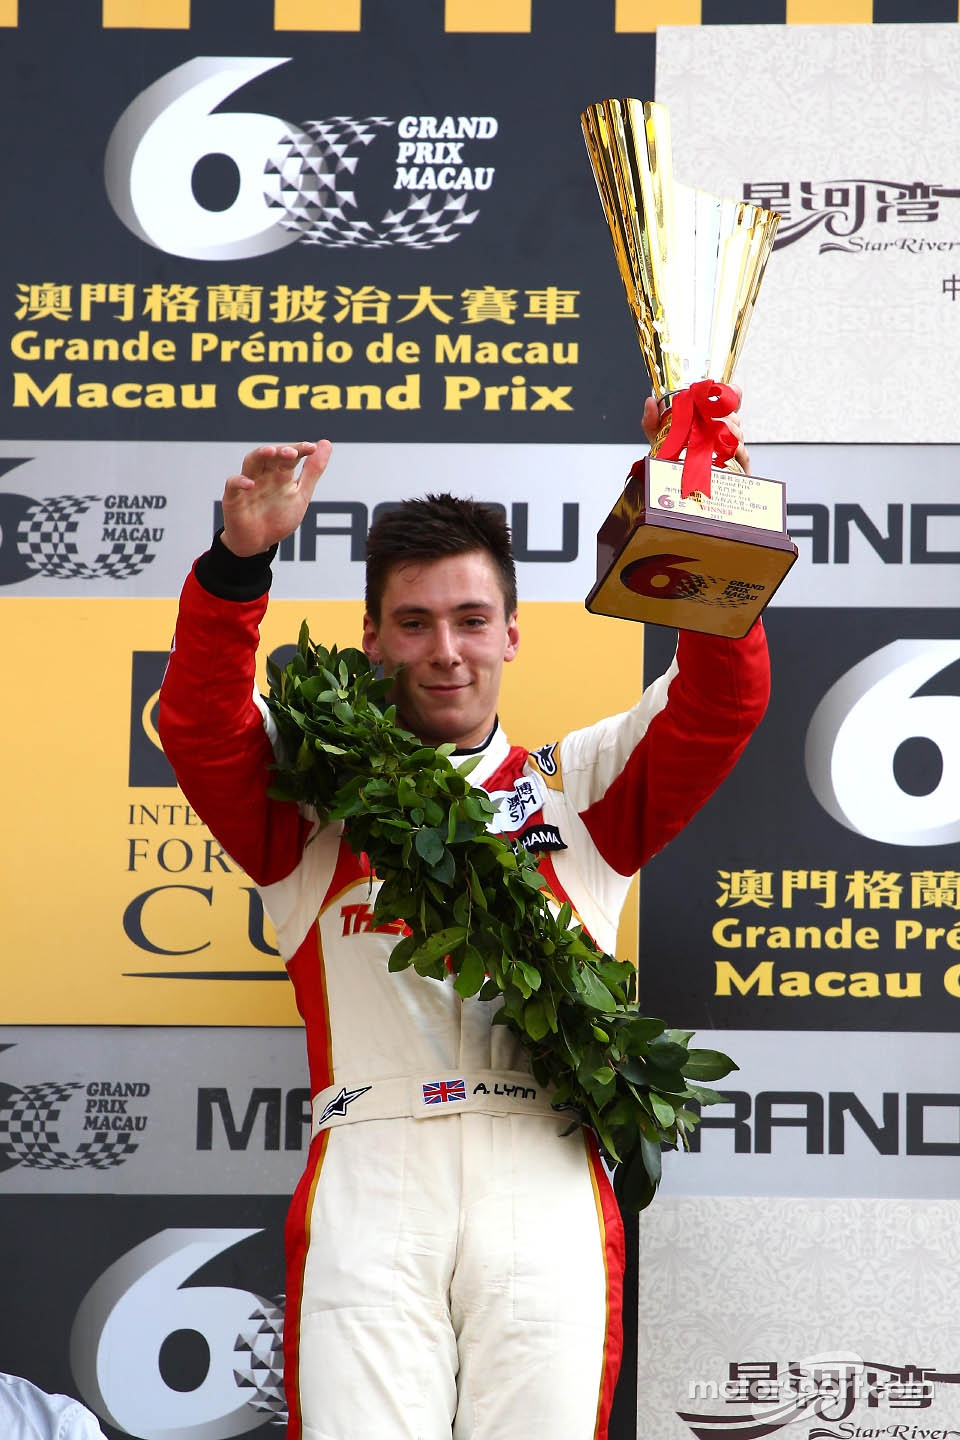 Lynn triumphs in tense Macau Grand Prix